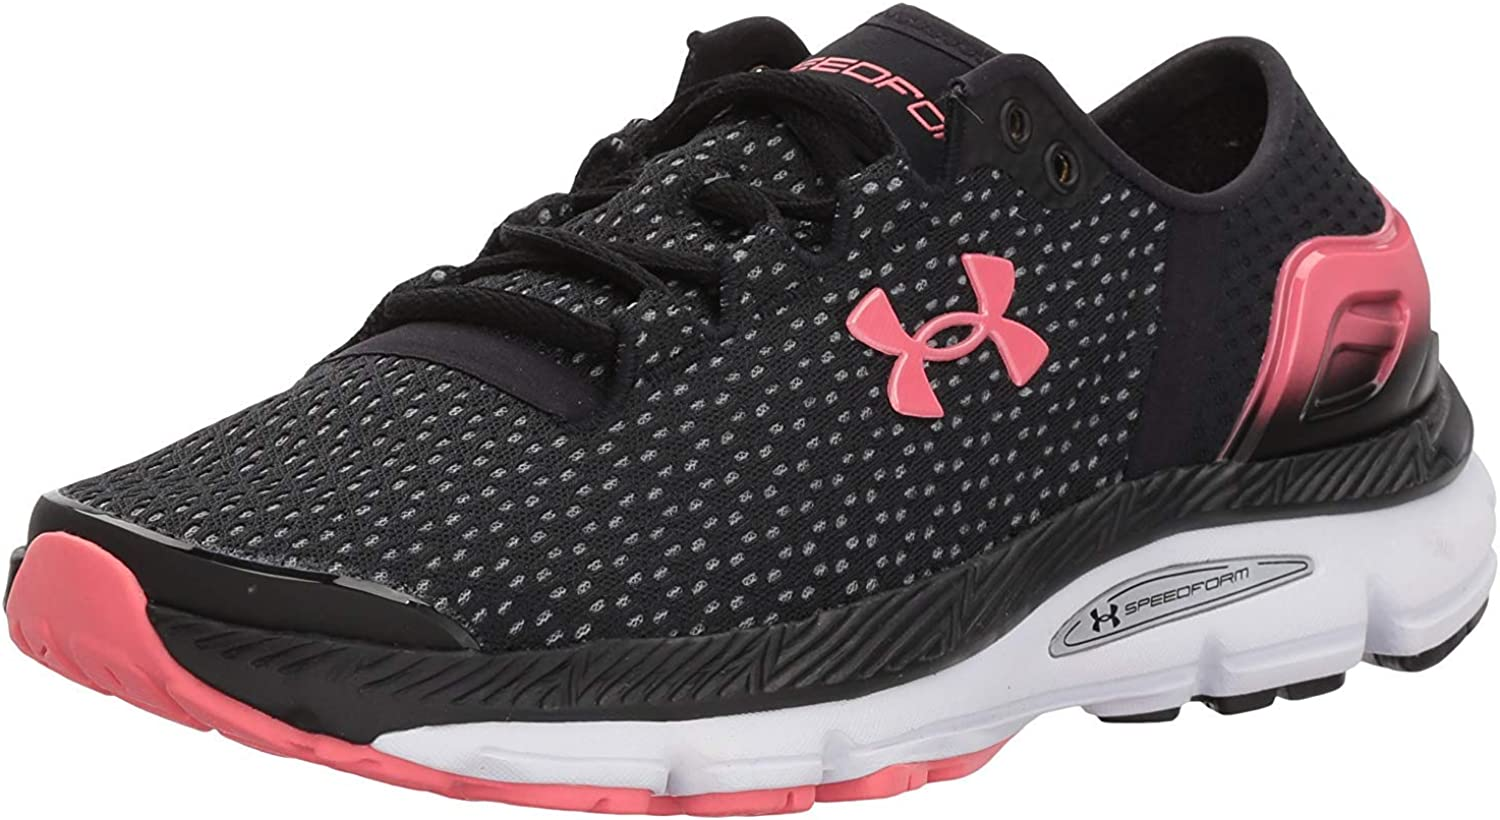 Under Armour Men s Speedform Intake 2 Running Shoe